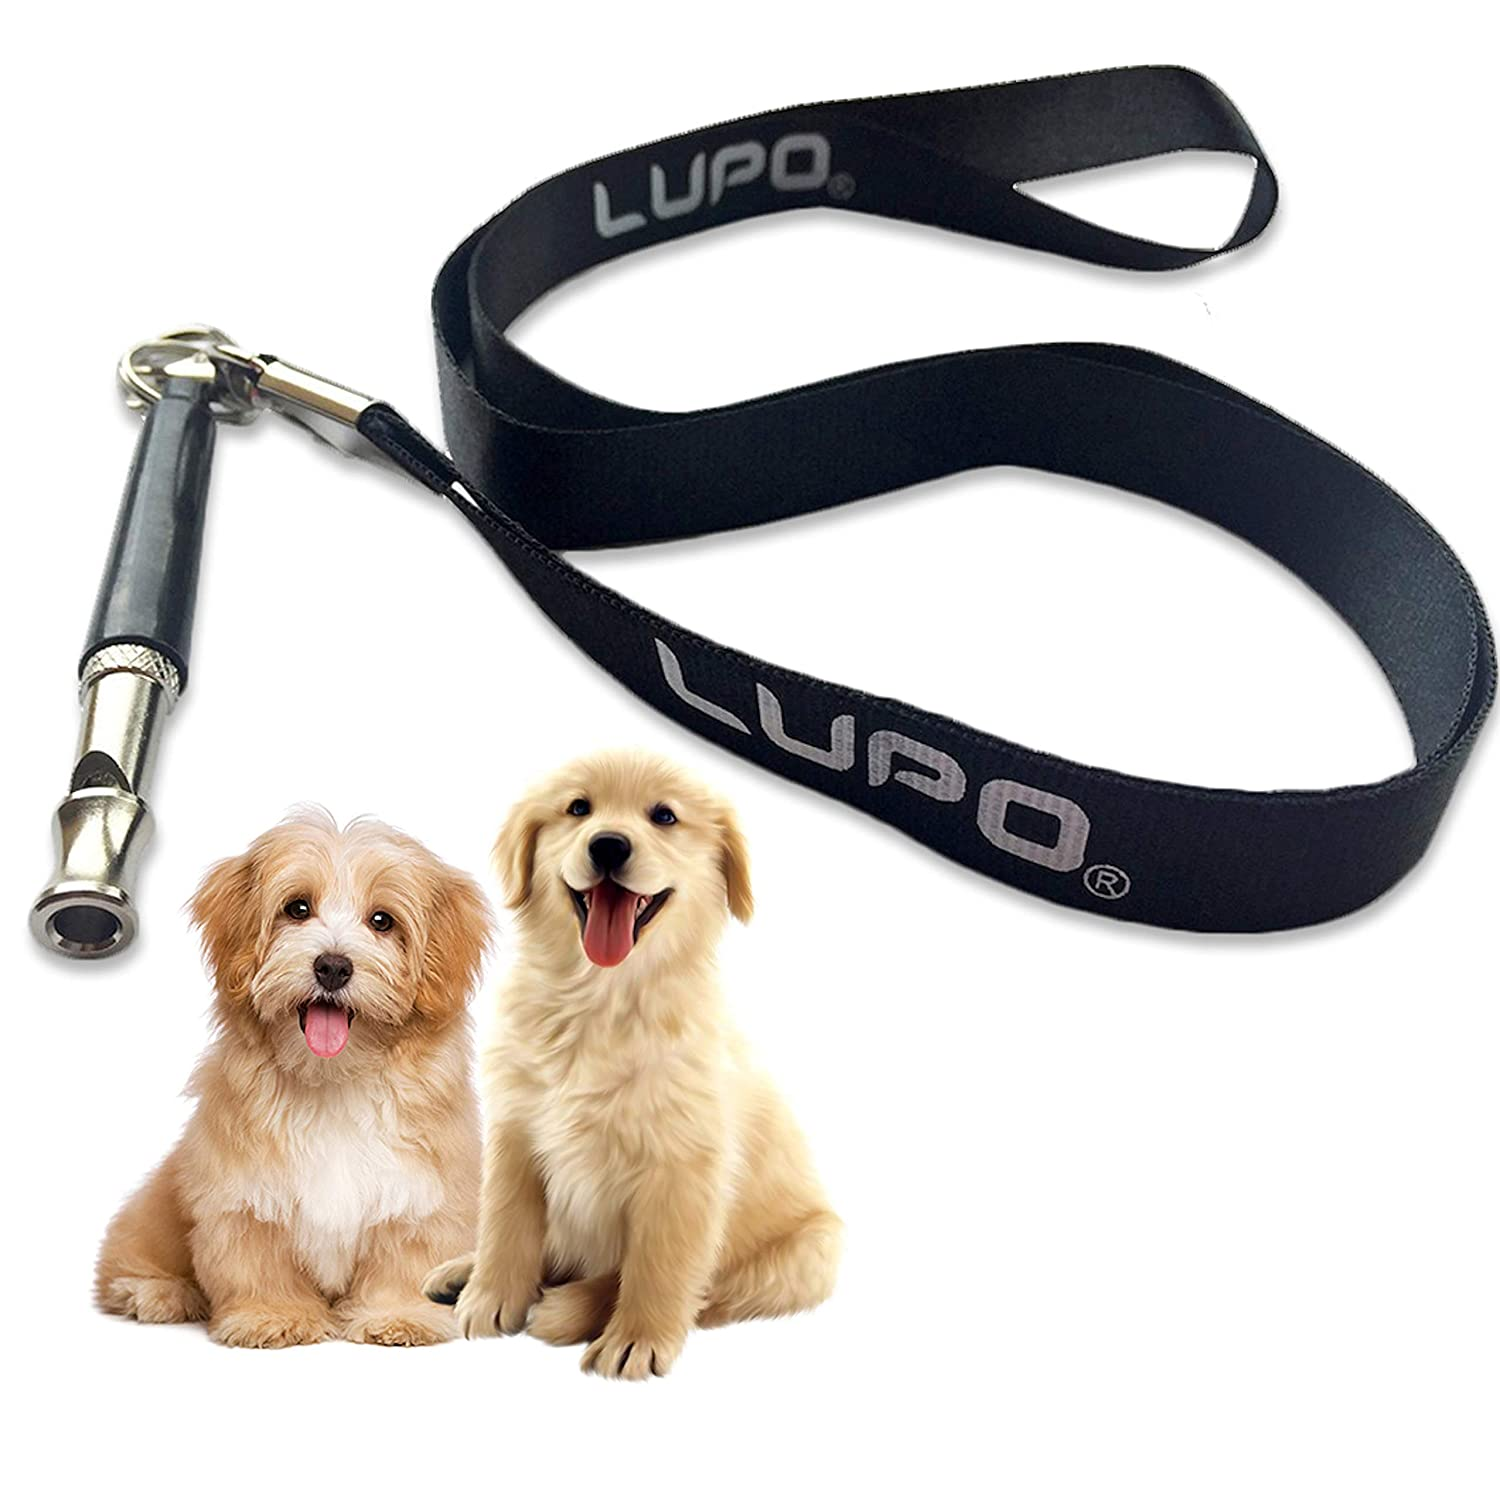 LUPO Dog Training Whistle, Lanyard, FREE Ebook Guide